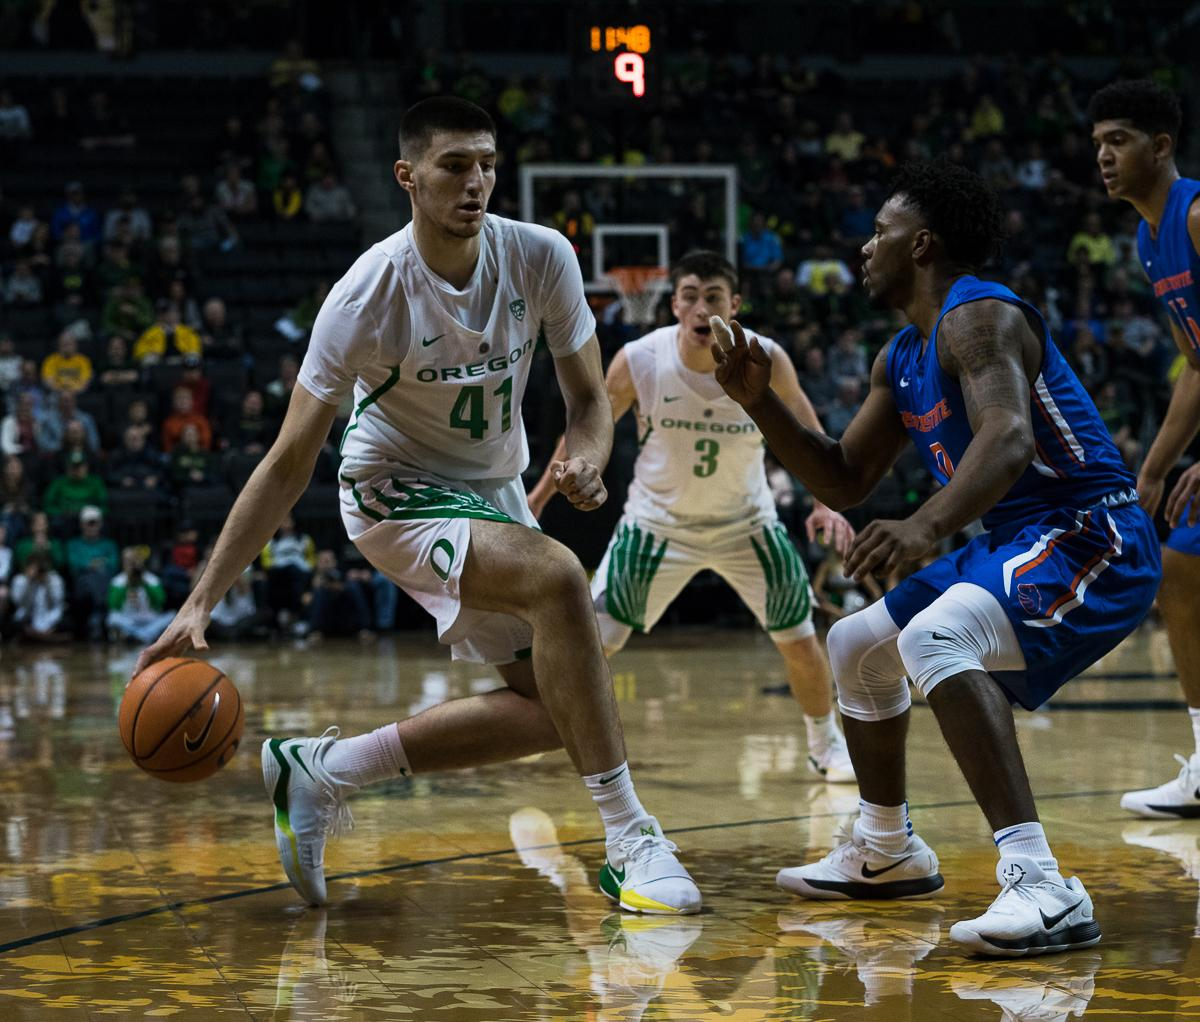 The University of Oregon's Victor Bailey Jr. (#41) is pressured by Boise State Bronco Marcus Dickinson (#0). The Boise State Broncos defeated the University of Oregon Ducks 73 – 70 at Matthew Knight Arena in Eugene, Ore., on December 1, 2017. Photo by Kit MacAvoy, Oregon News Lab